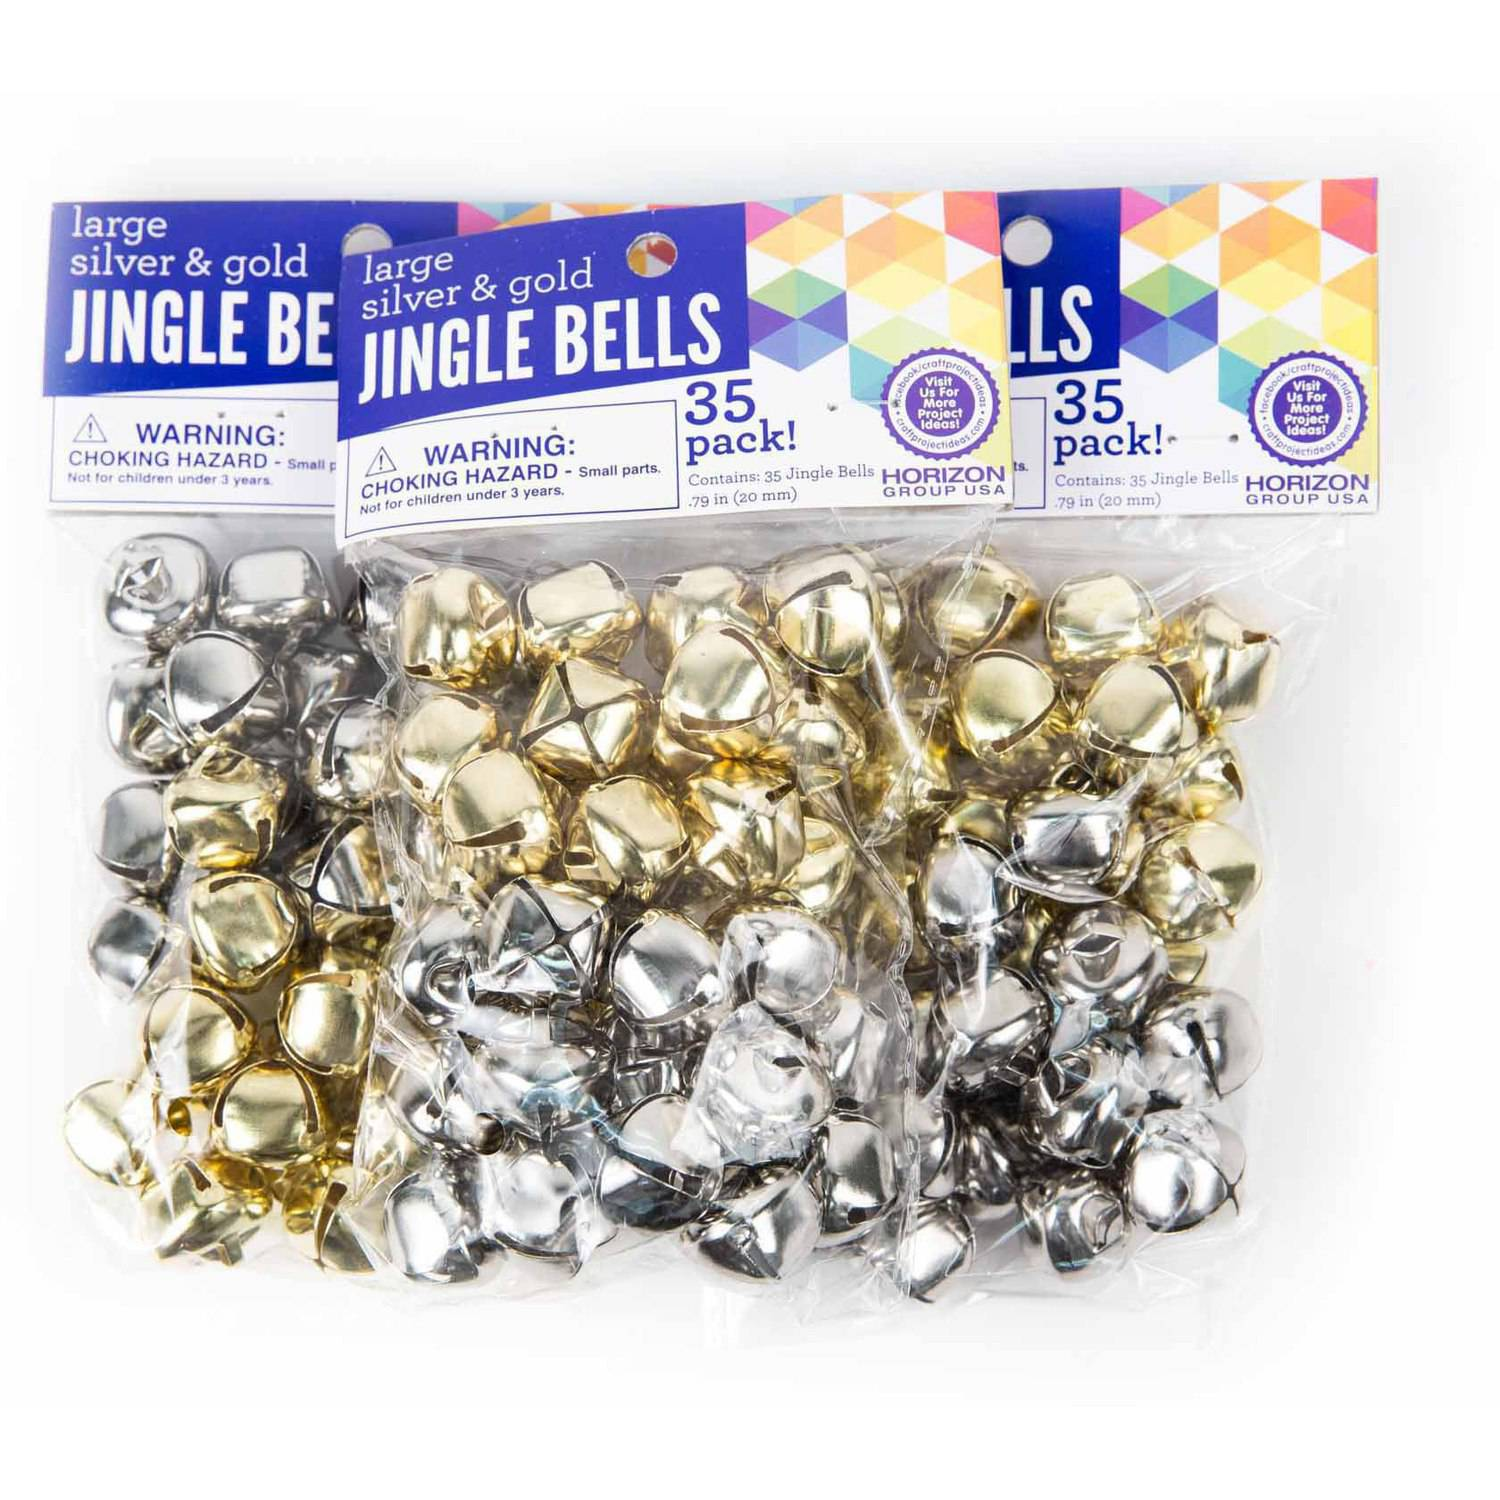 Horizon Group USA Gold & Silver Jingle Bells 20mm, 3pk